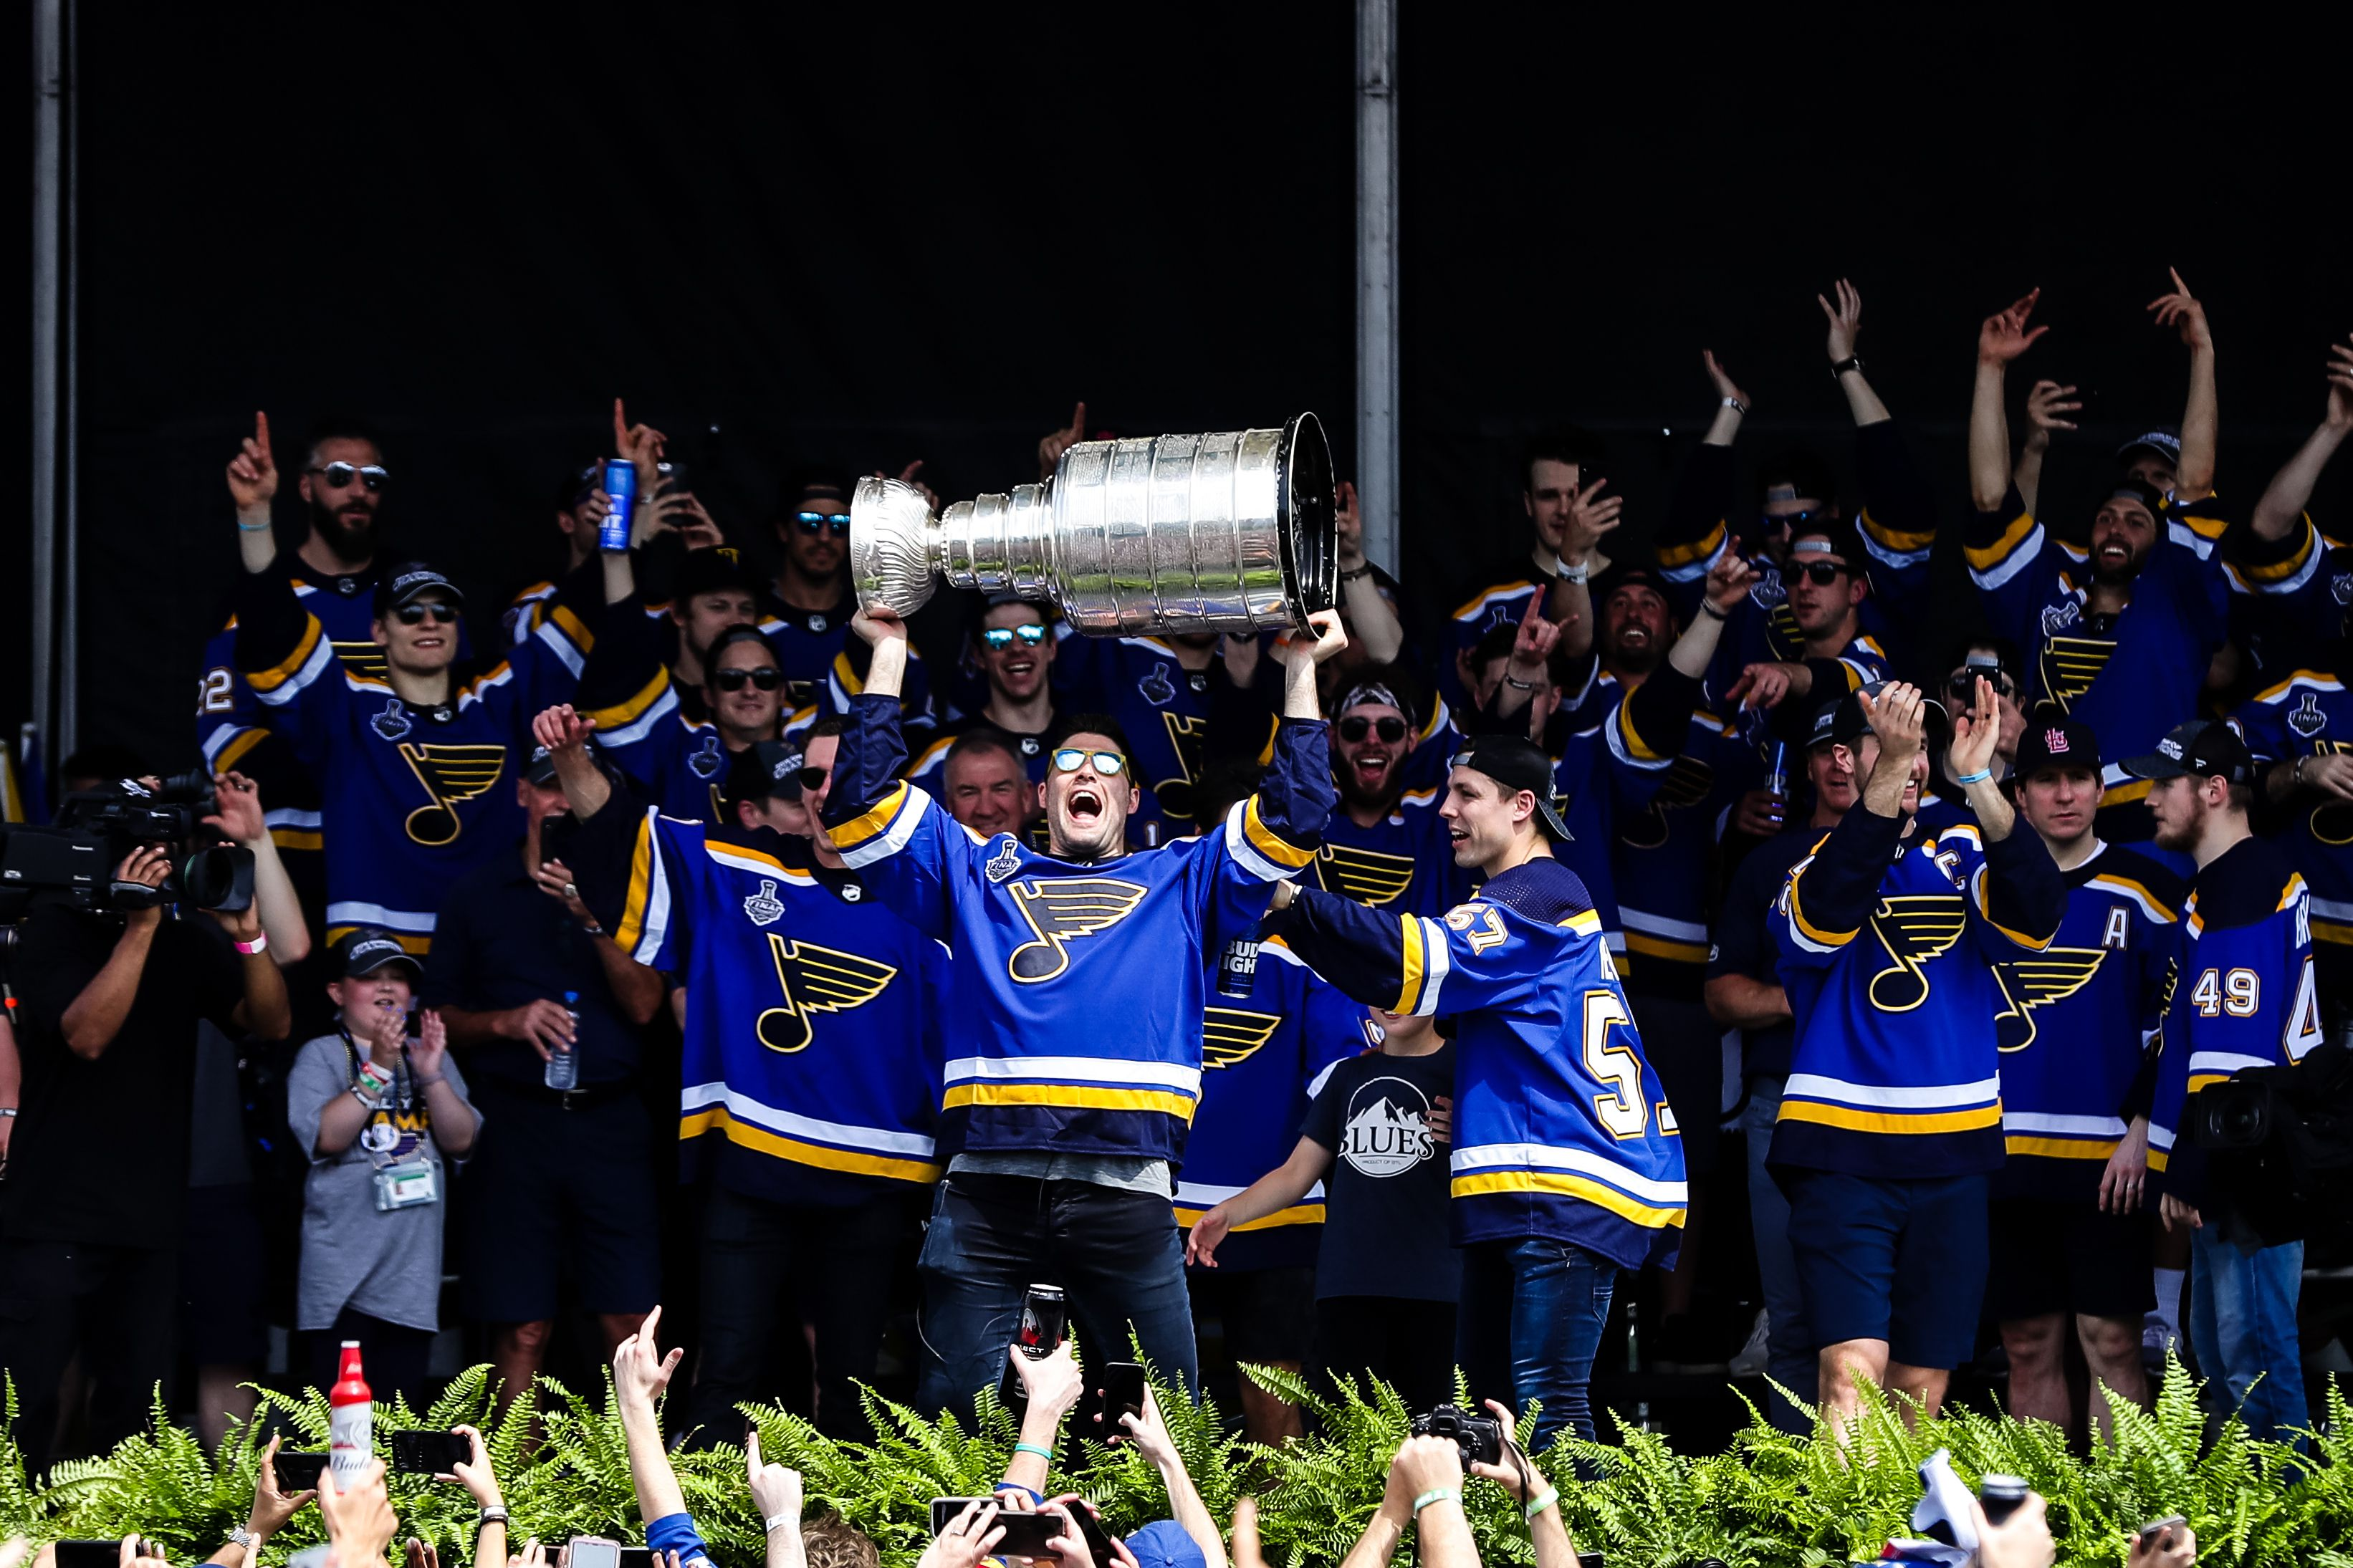 Blues parade